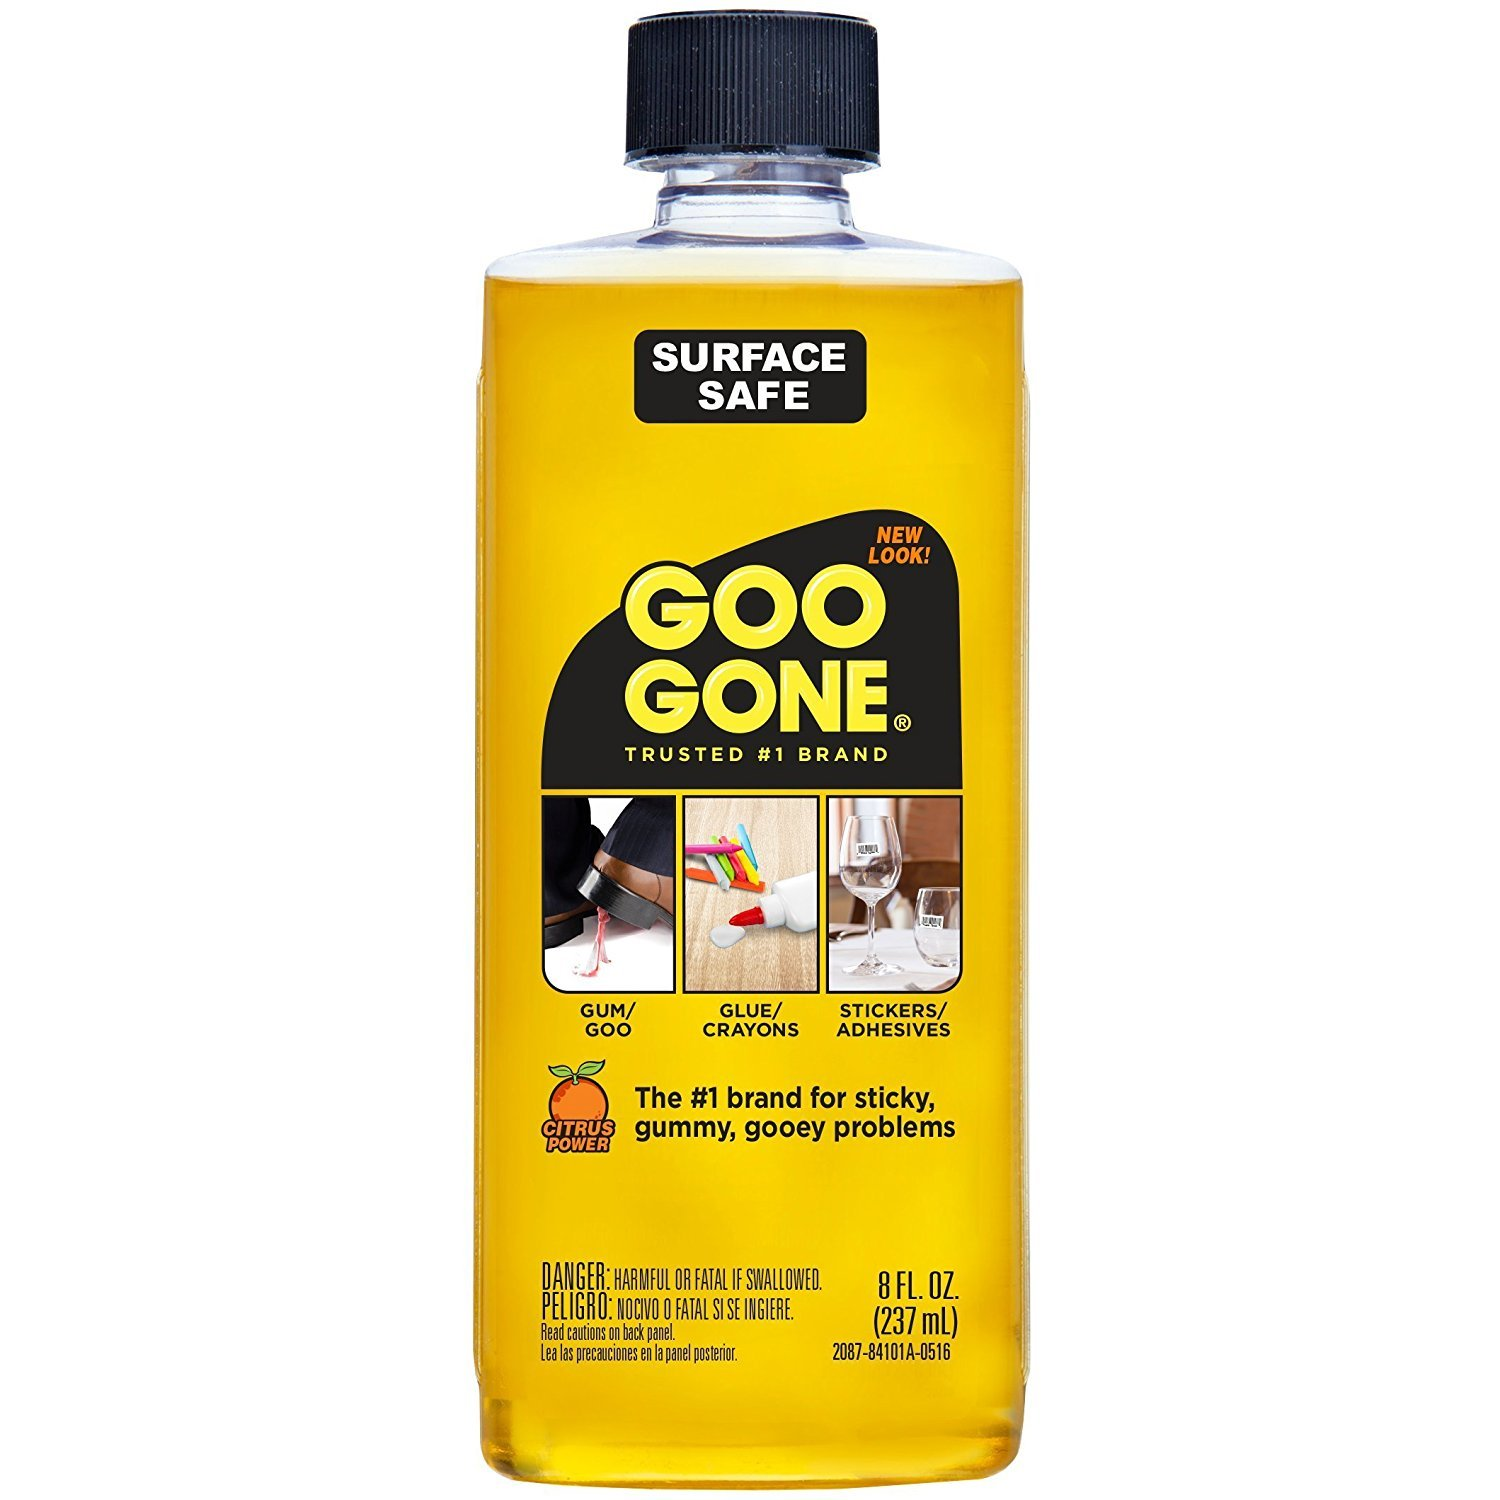 Goo Gone 8 oz. - Removes stickers, grease, gum, tar, crayon & tape (6)